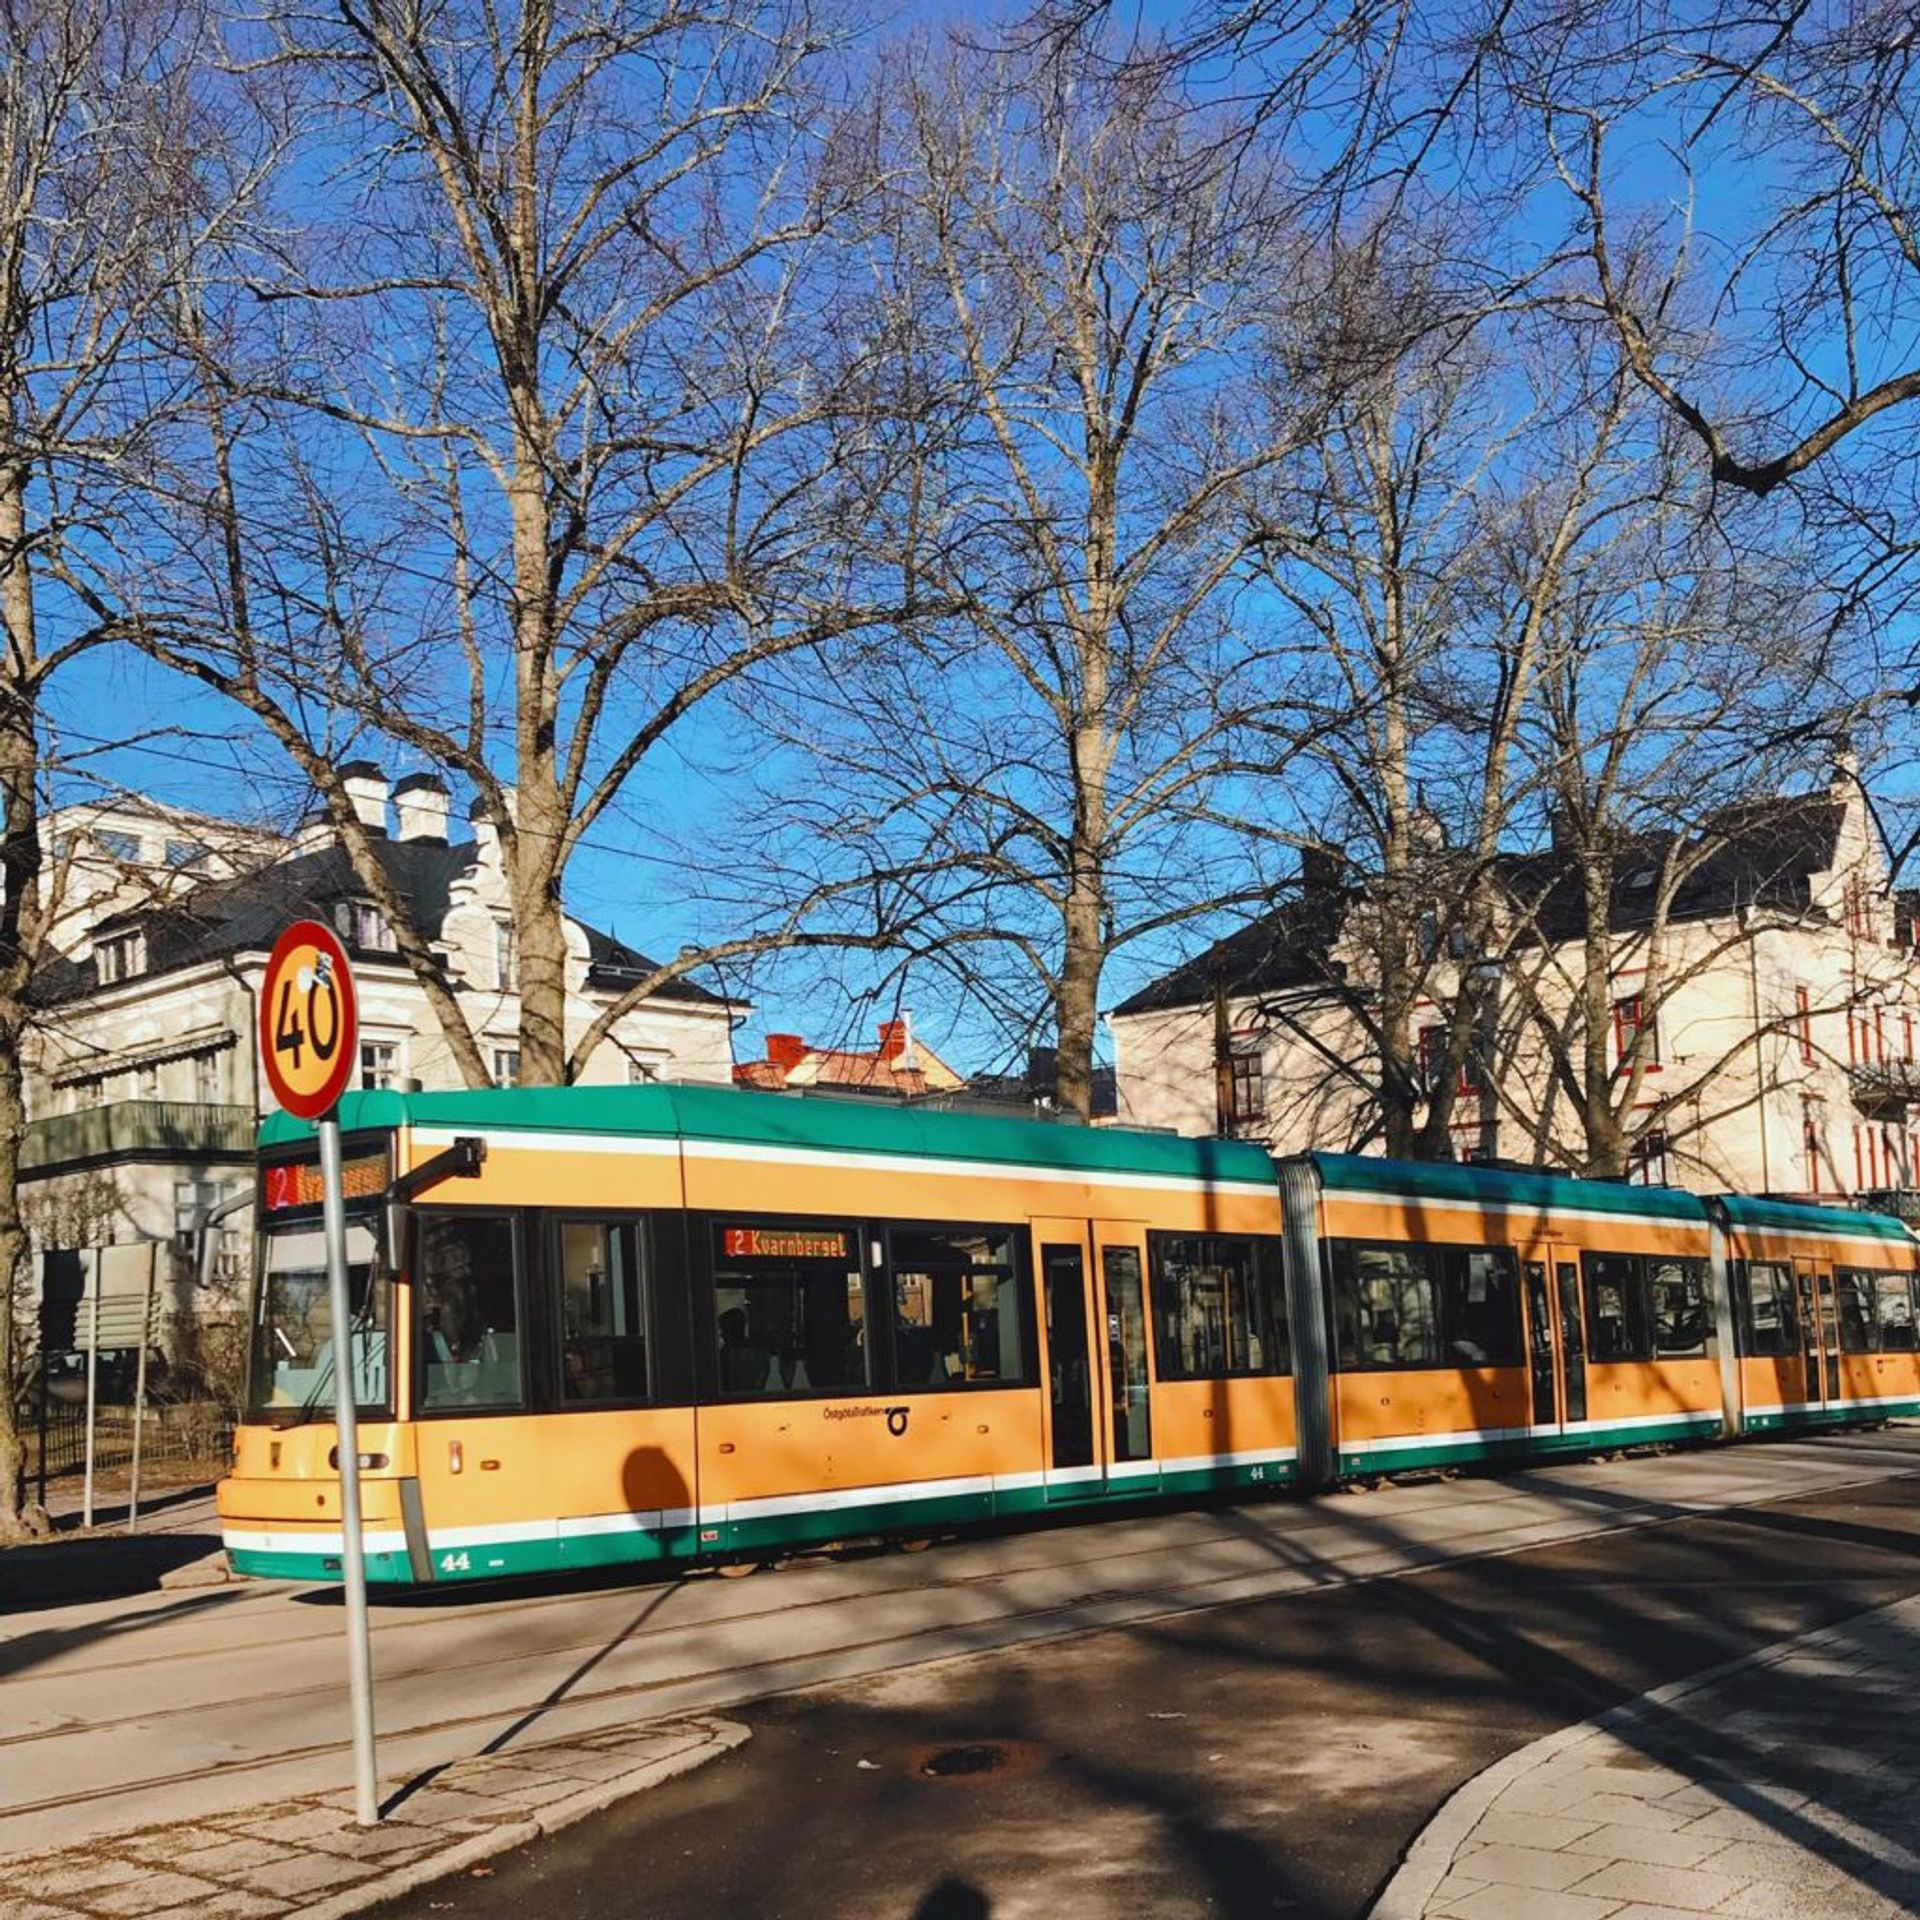 Yellow and green tram.